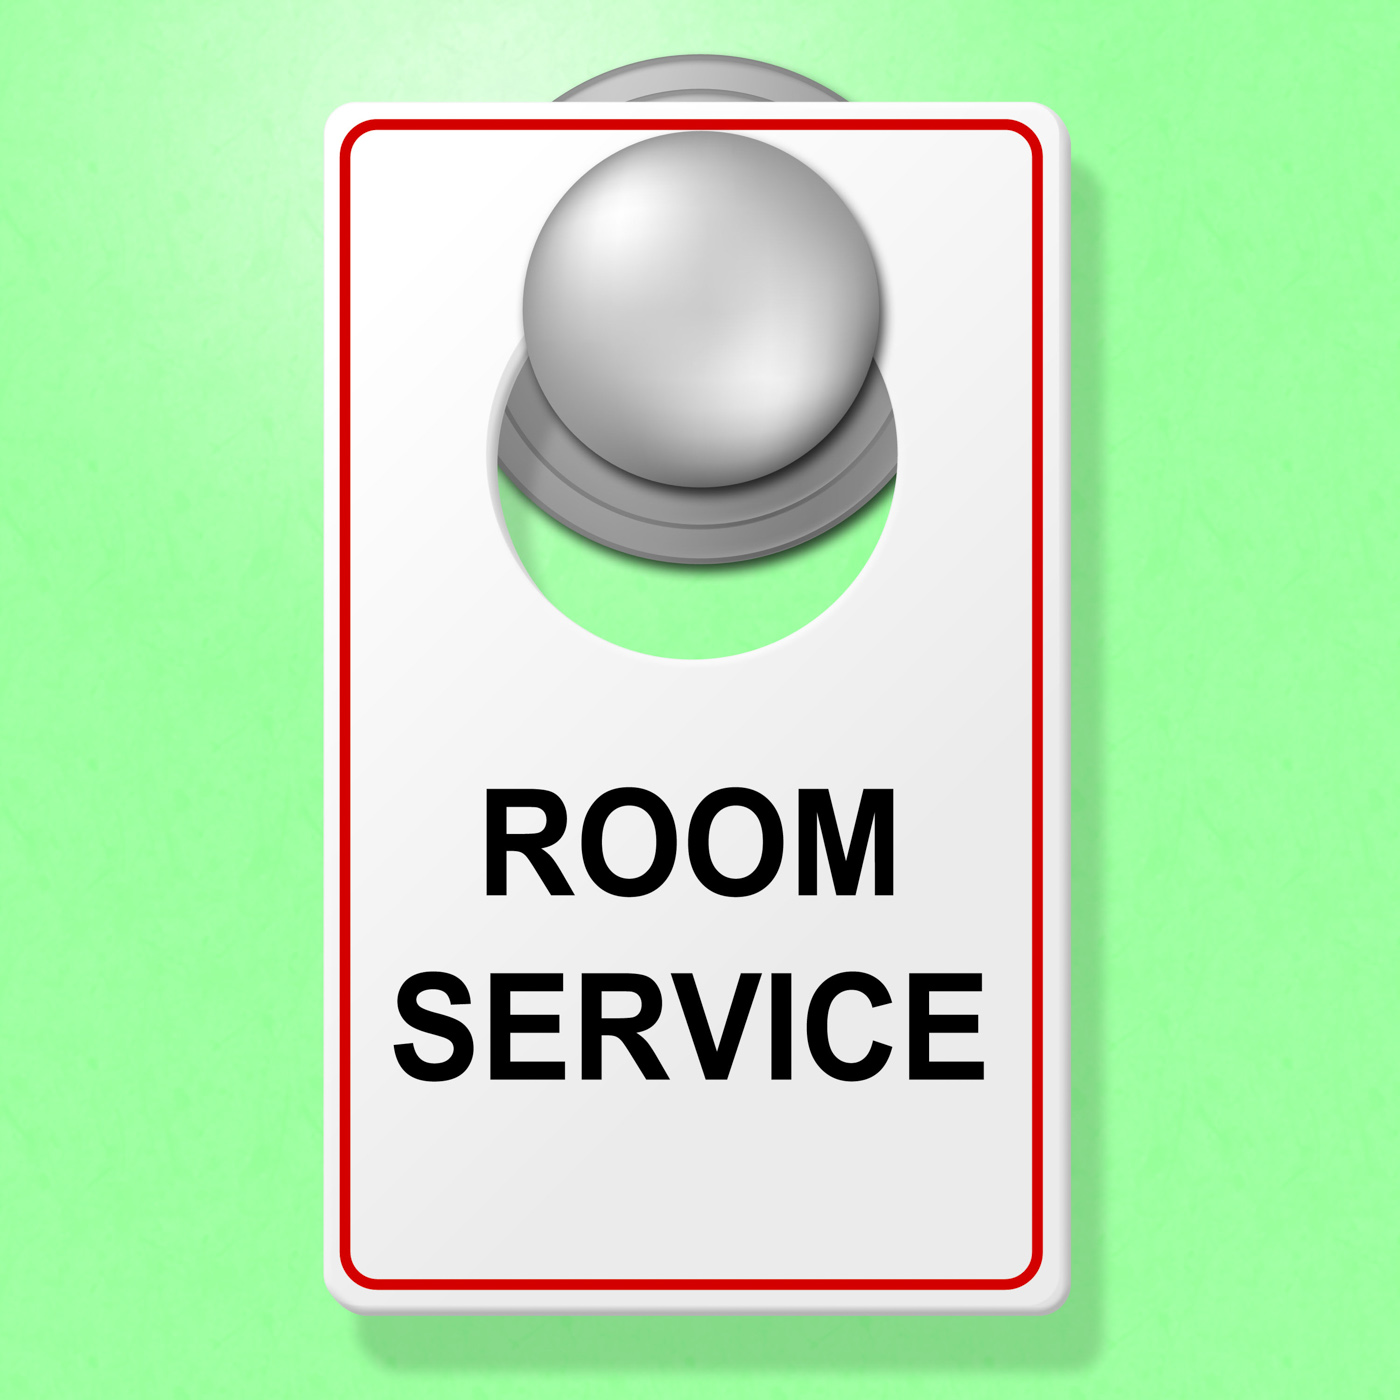 Room service sign represents place to stay and cafe photo